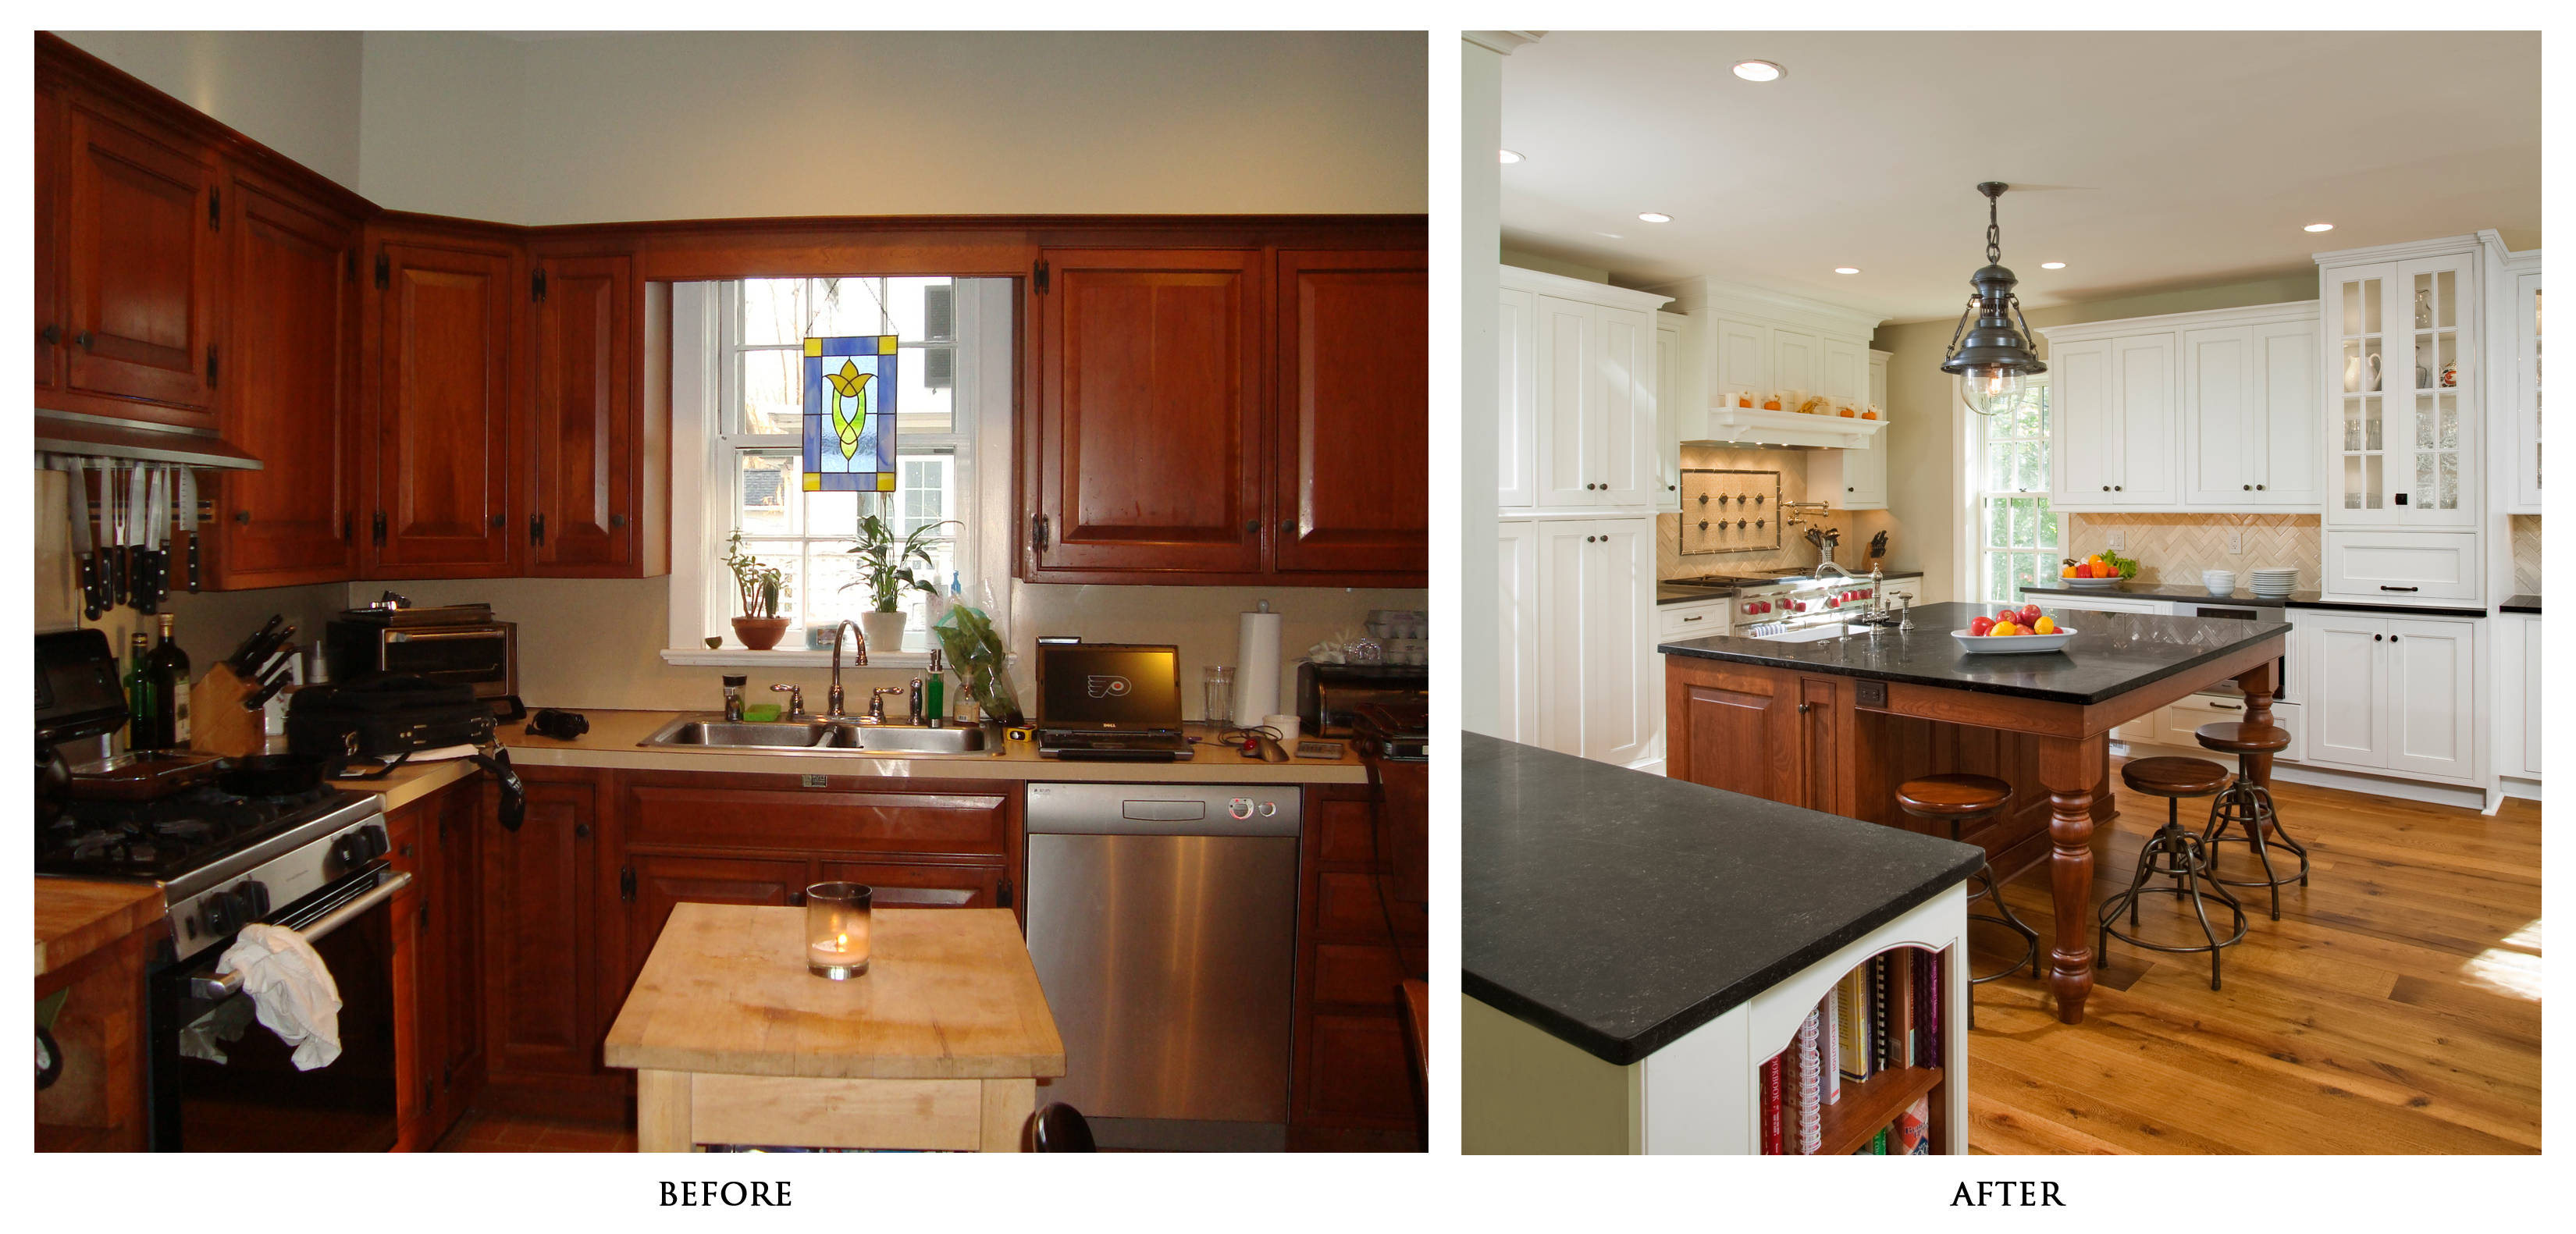 kitchen design photos before and after. Kitchen Renovations Before And After With Light Cabinets Granite  Countertop Plus Unique Pendant Limpt On Get The Fresh Cool Outlook Inspiration Kitchen Remodeling